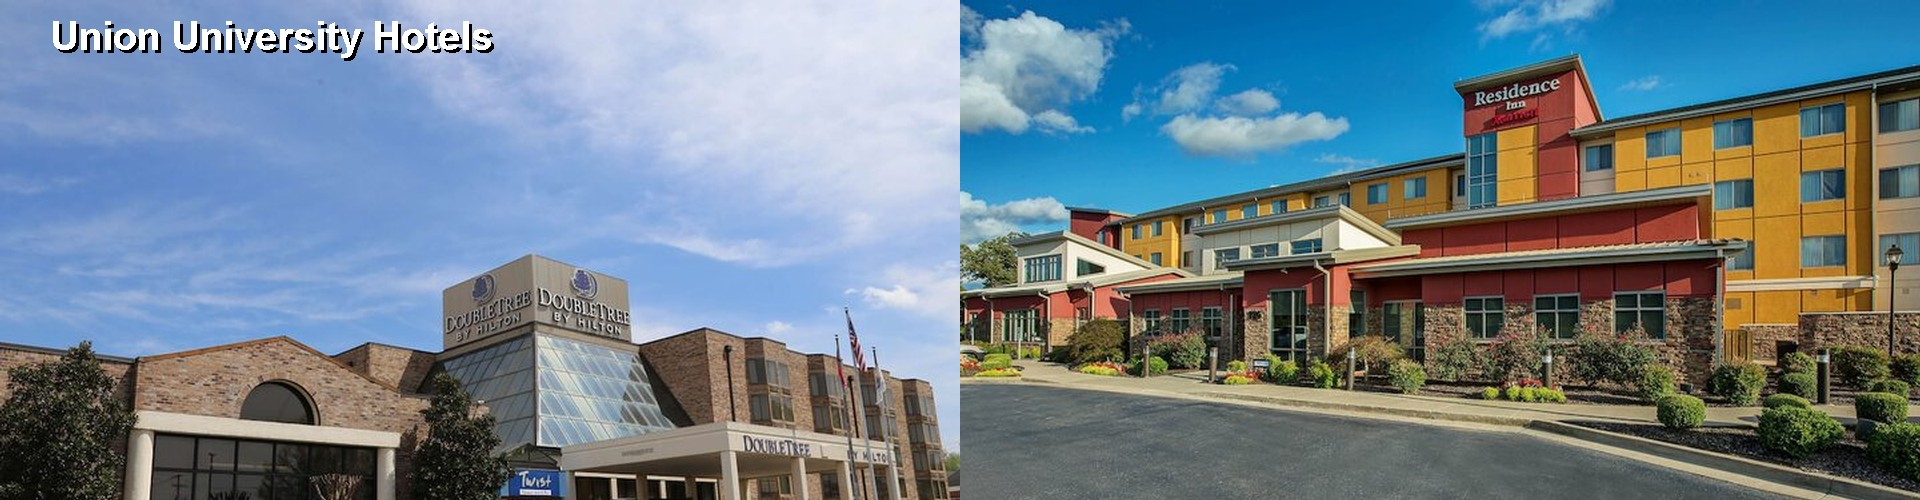 5 Best Hotels near Union University